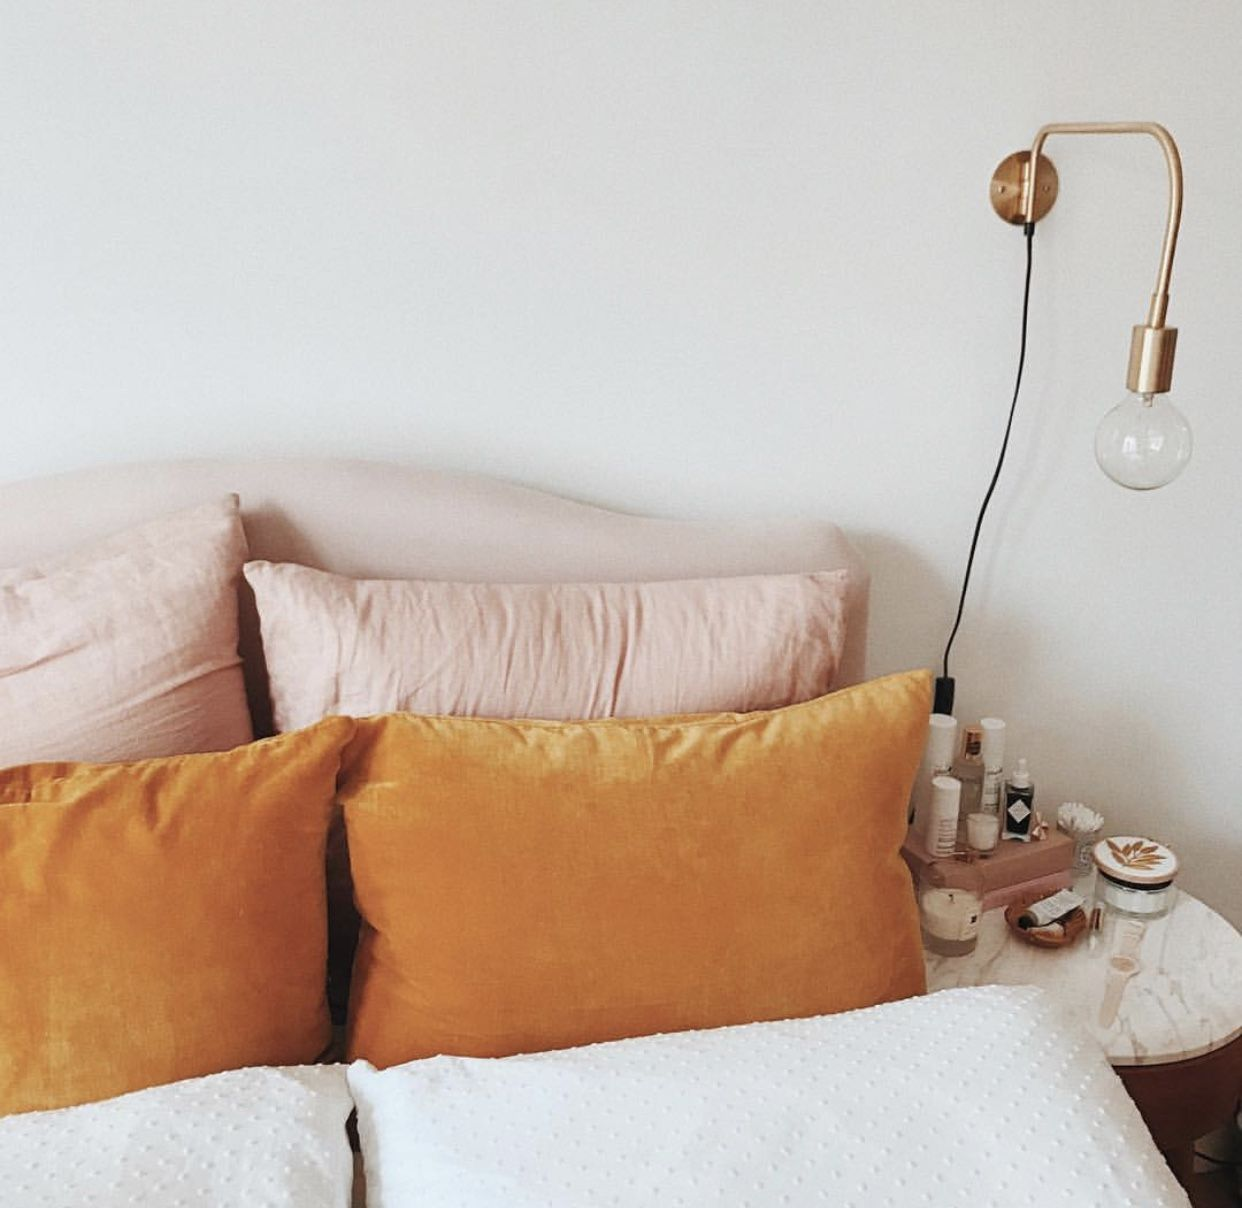 Pillows/ Colors | Decor | Pinterest | Pillows, Bedrooms and Room decor